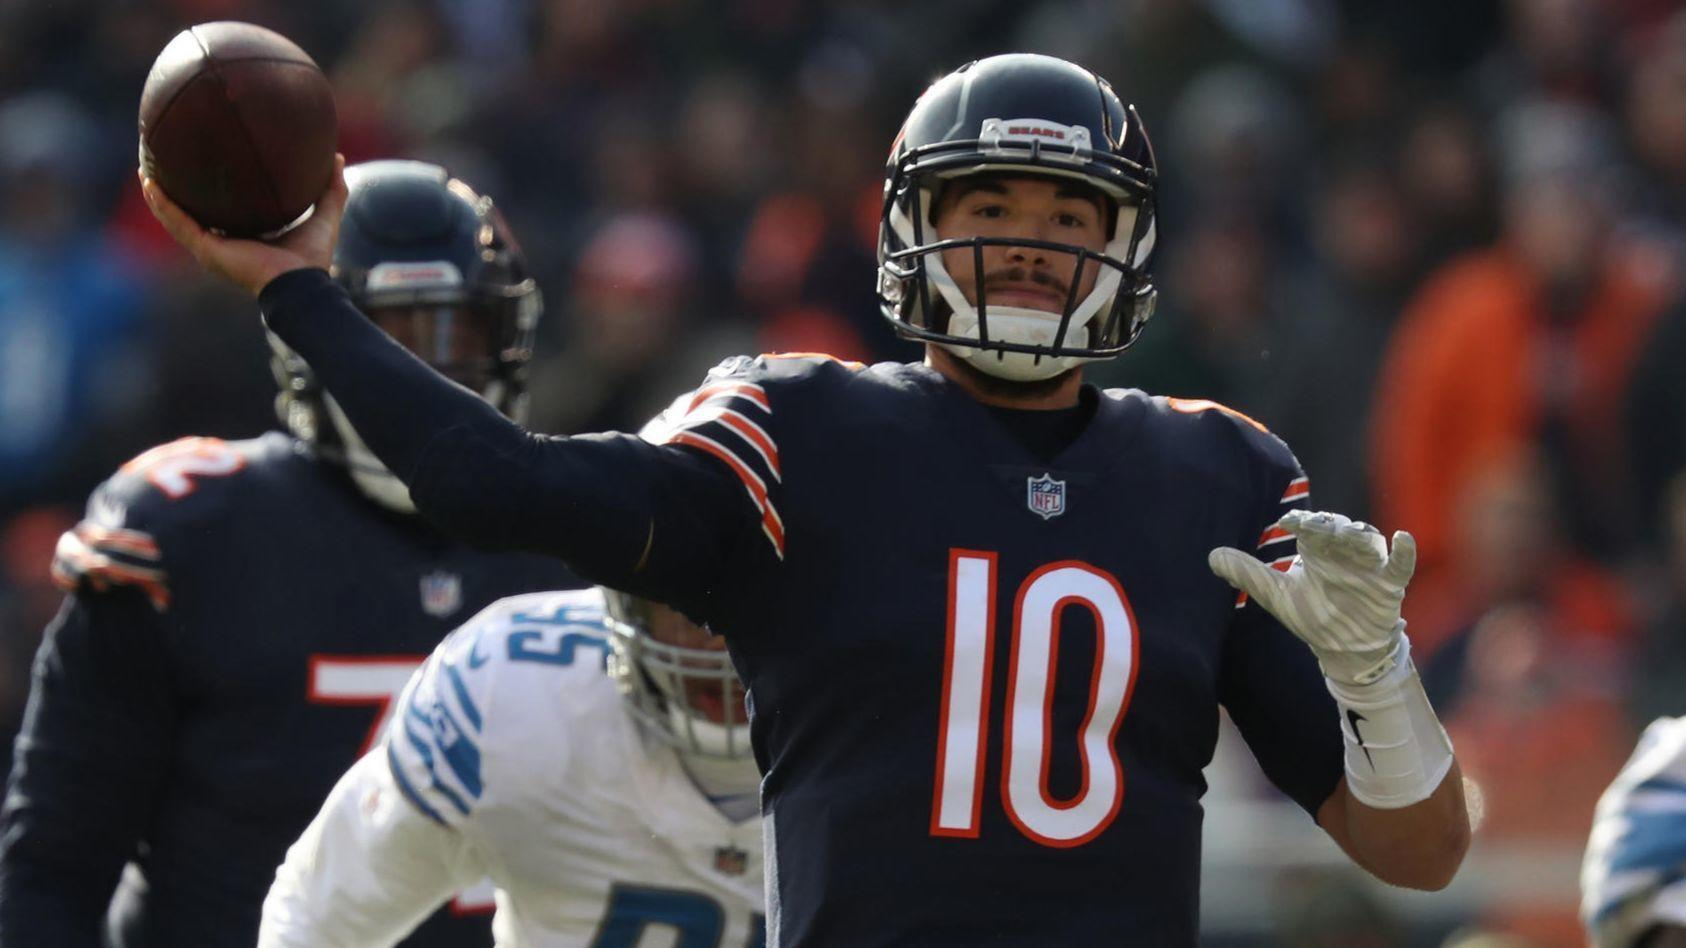 609c18ab4 5 observations from rewatching Bears-Lions  Mitch Trubisky s best plays  from his best game